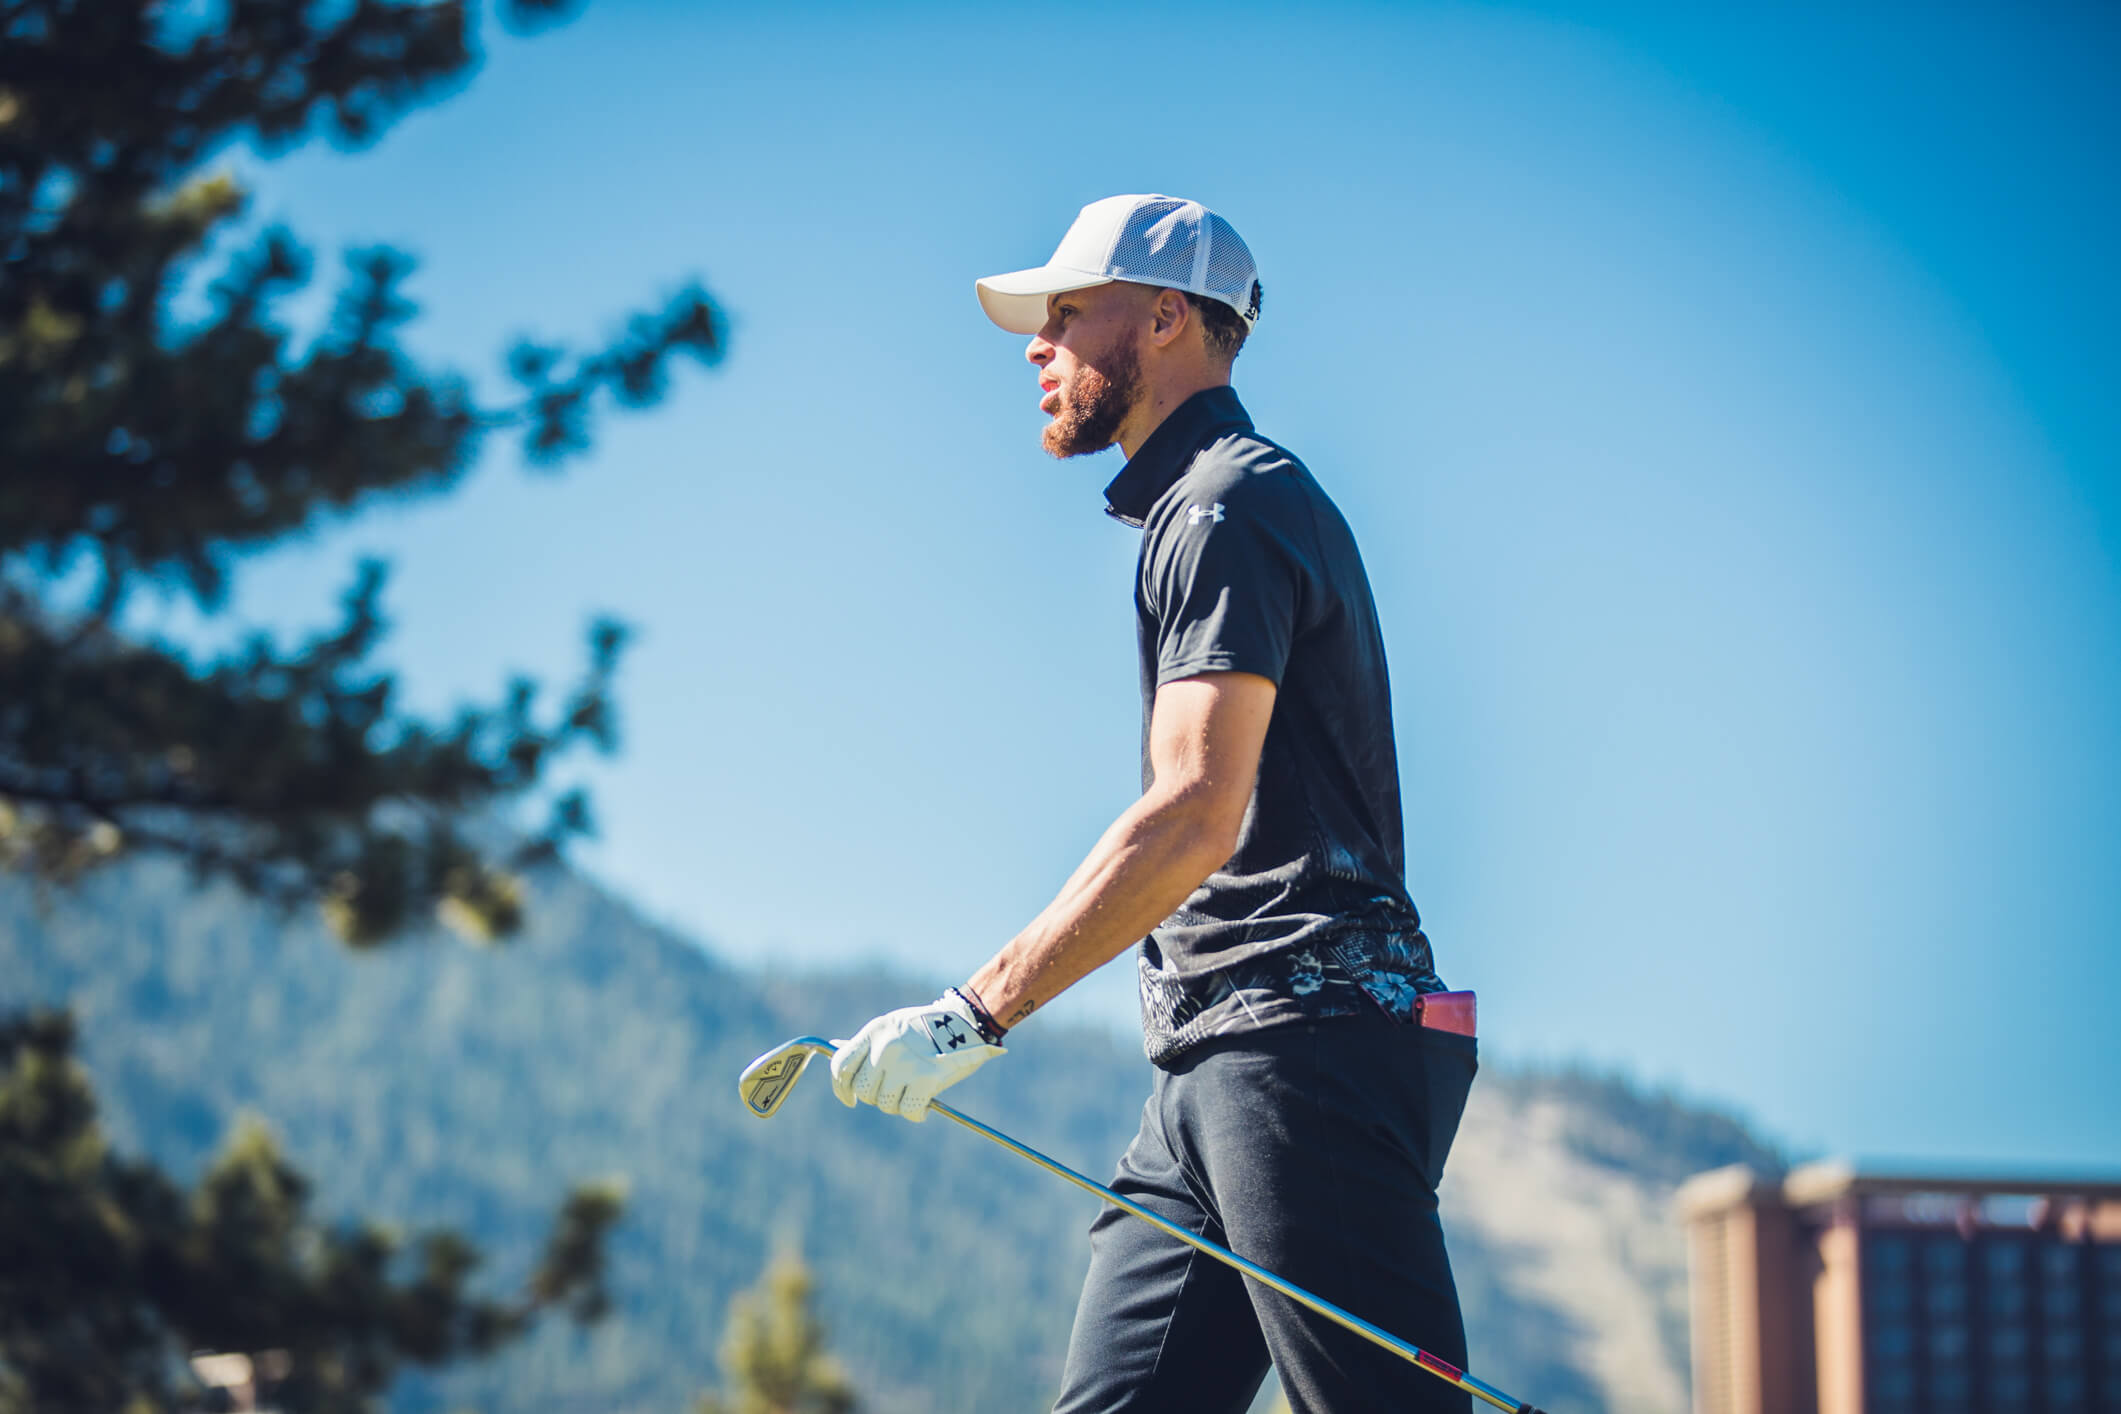 Steph Curry Playing Golf